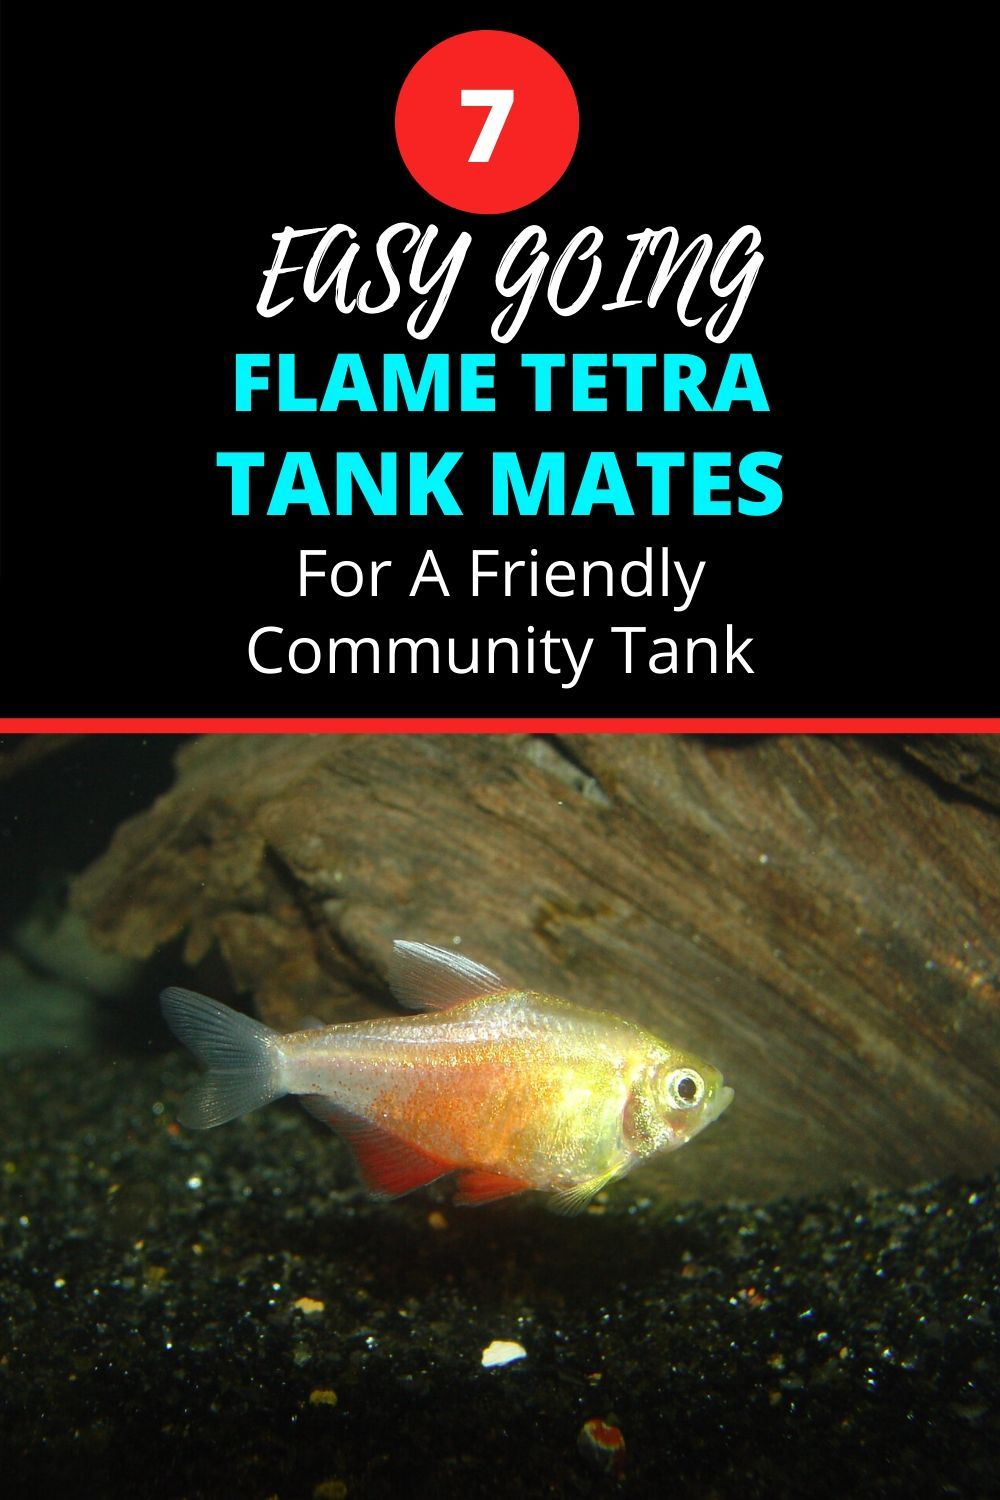 Flame Tetra Tank Mates – An Easy Going Bunch